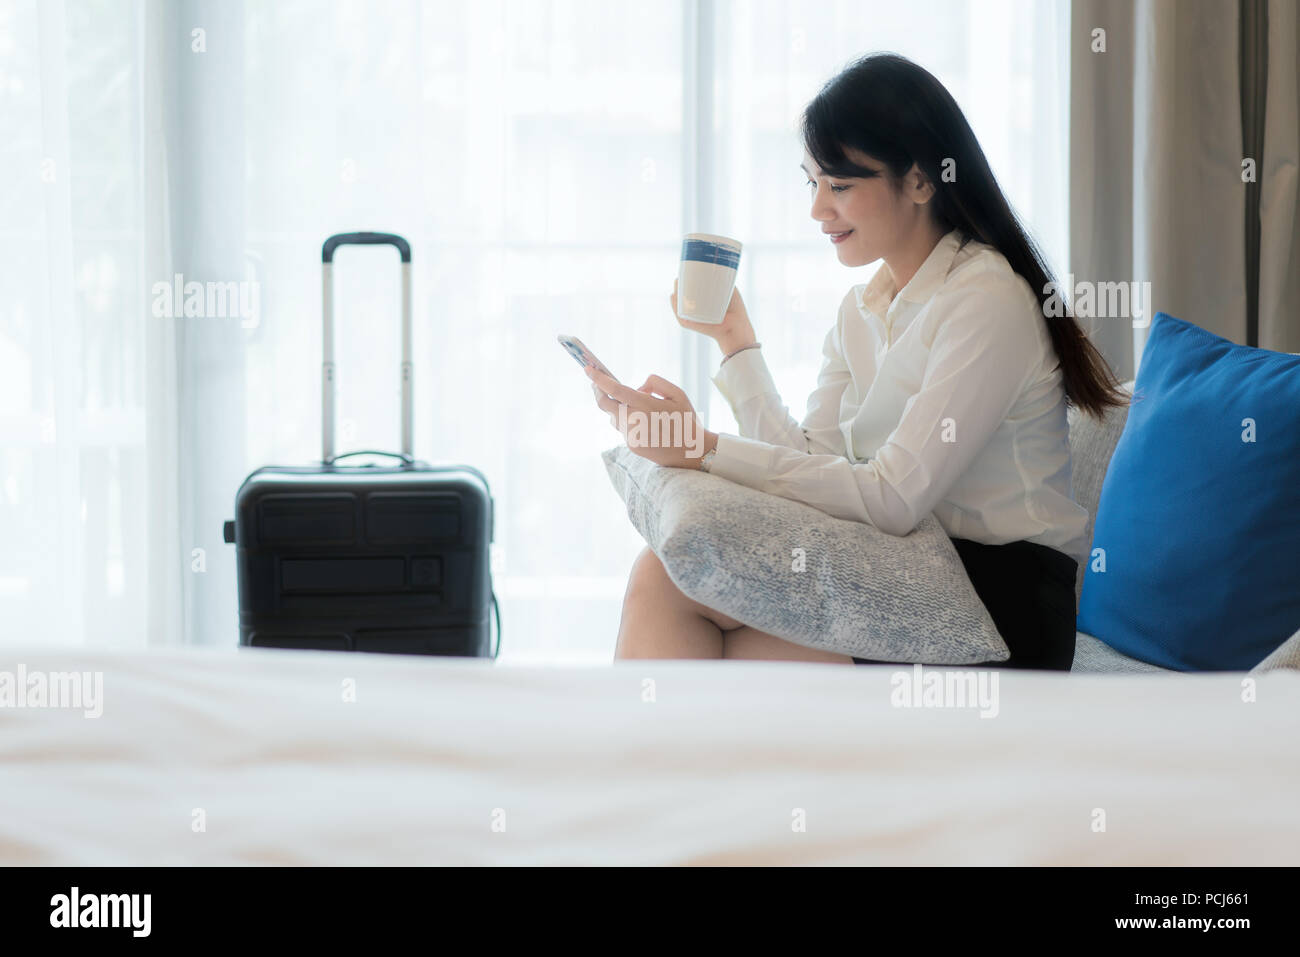 Beautiful Asian young smiling businesswoman in suit drinking coffee and using mobile phone while sitting on the sofa in hotel room. Business travel. - Stock Image